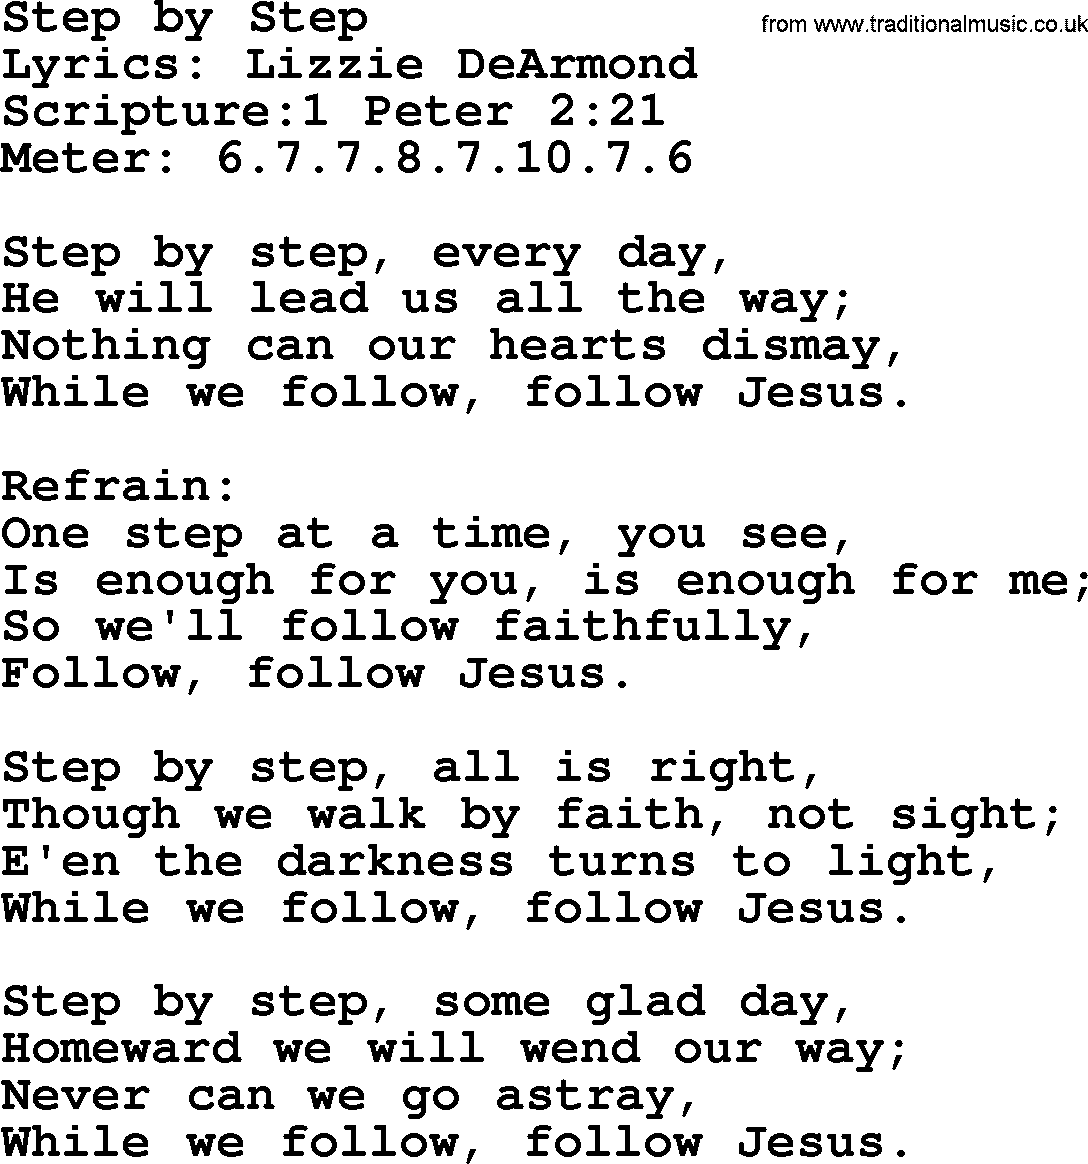 Good Old Hymns - Step by Step - Lyrics, Sheetmusic, midi ...